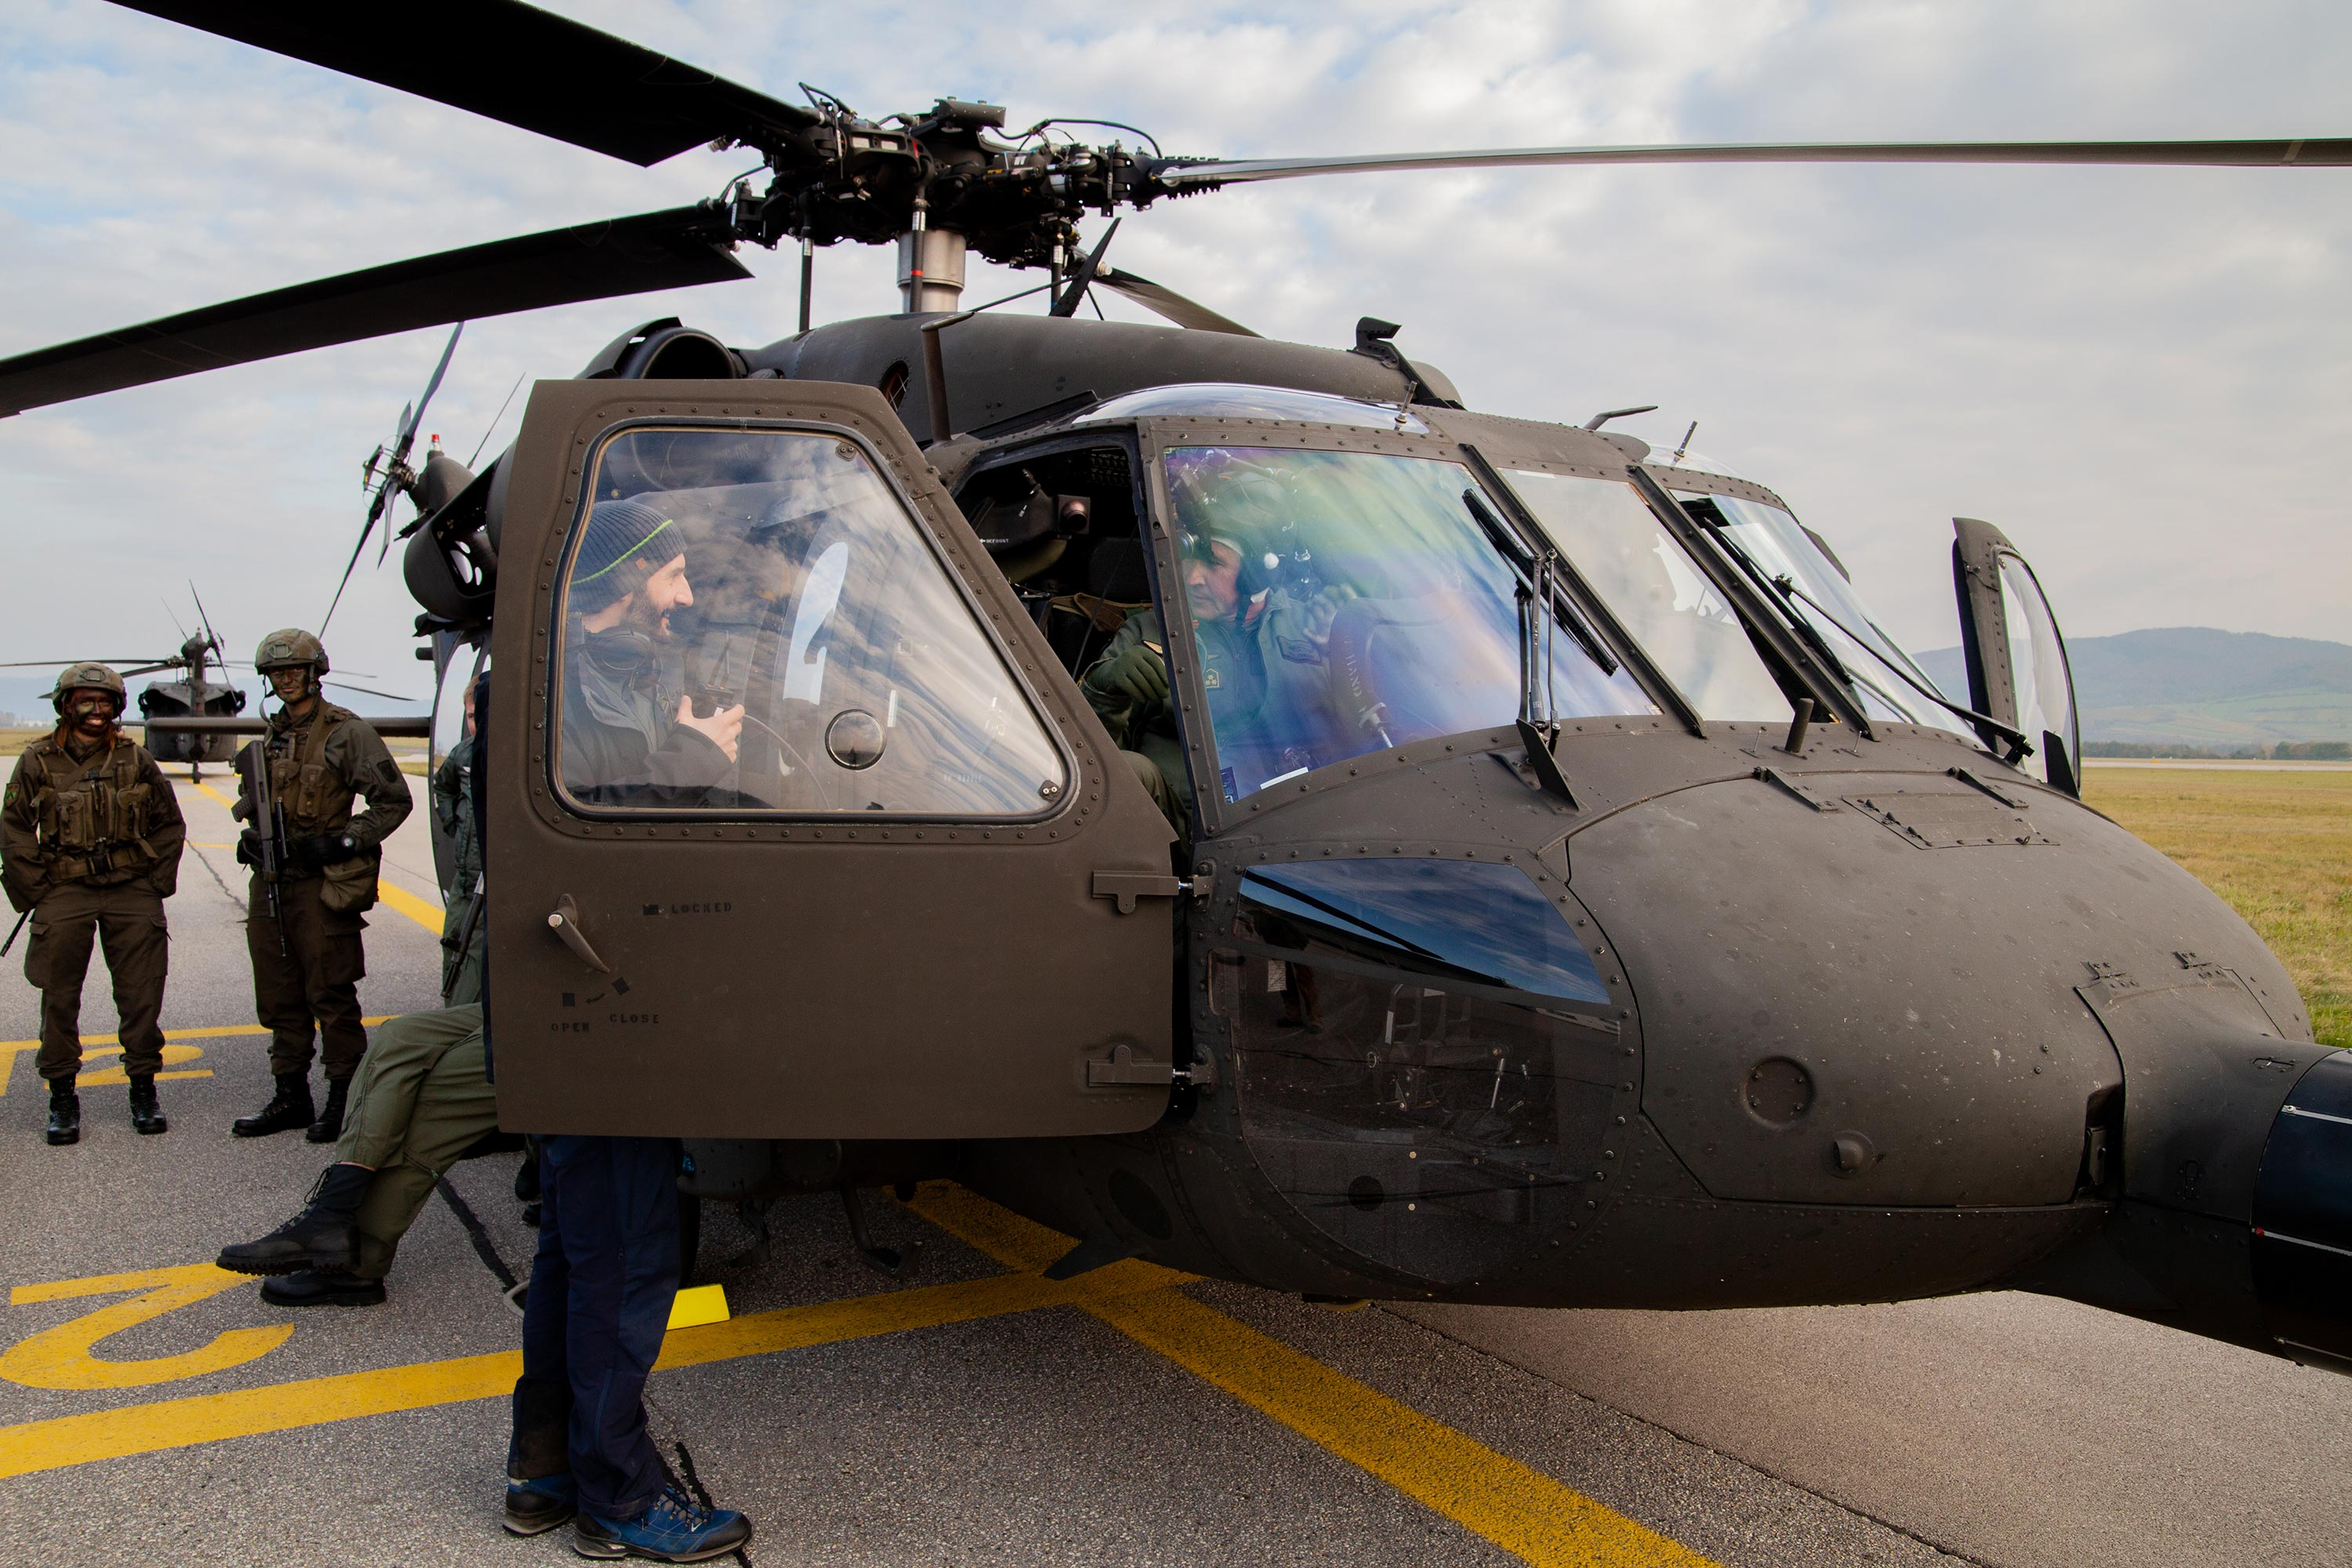 360 video director greeting a pilot sitting inside a Black Hawk military helicopter.